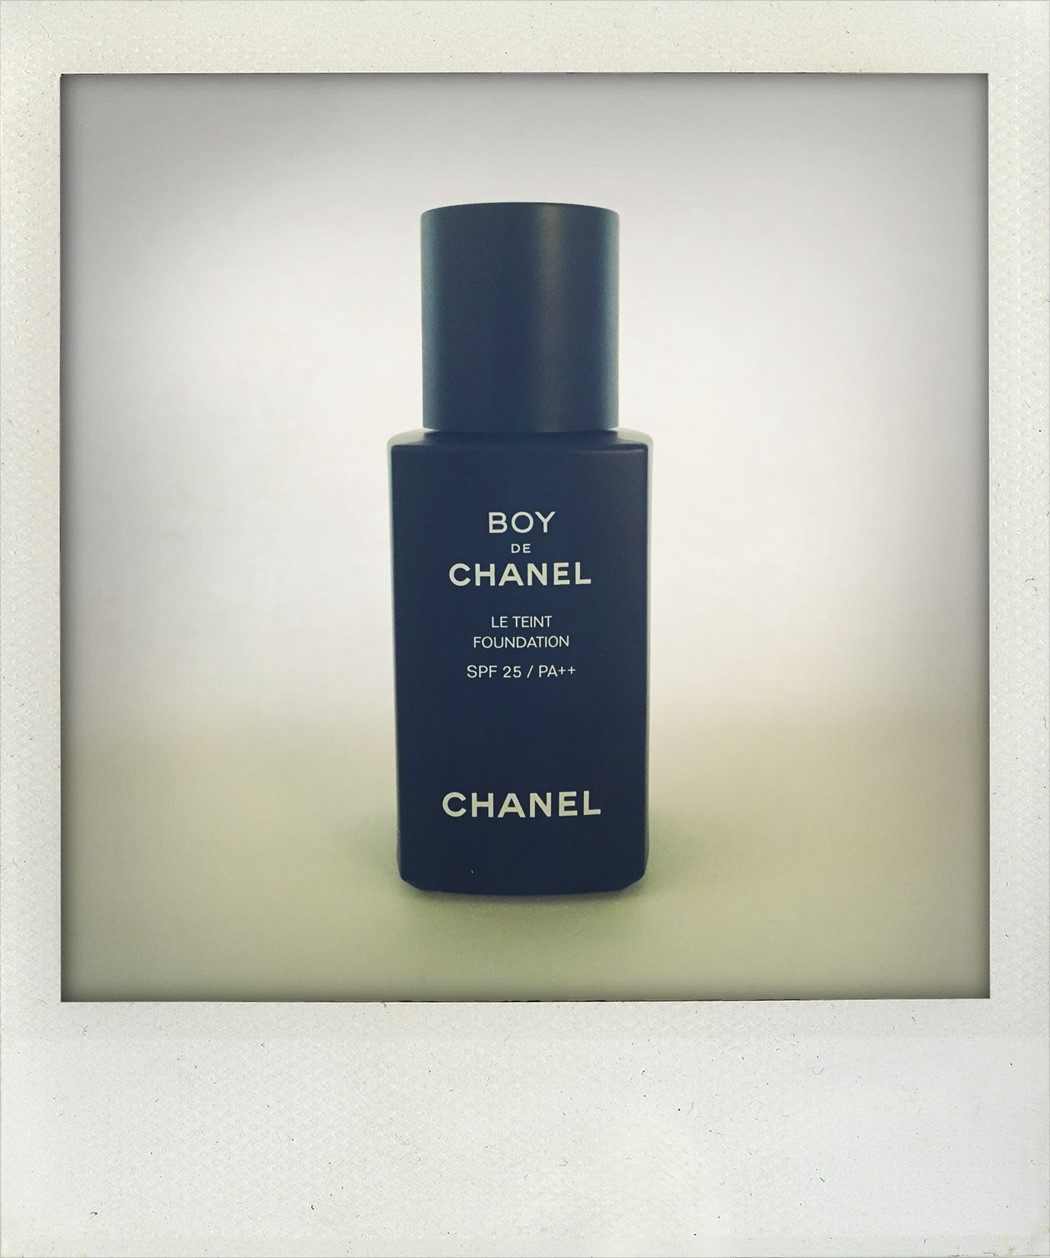 Chanel Boy de makeup men tutorial how-to mens grooming guide